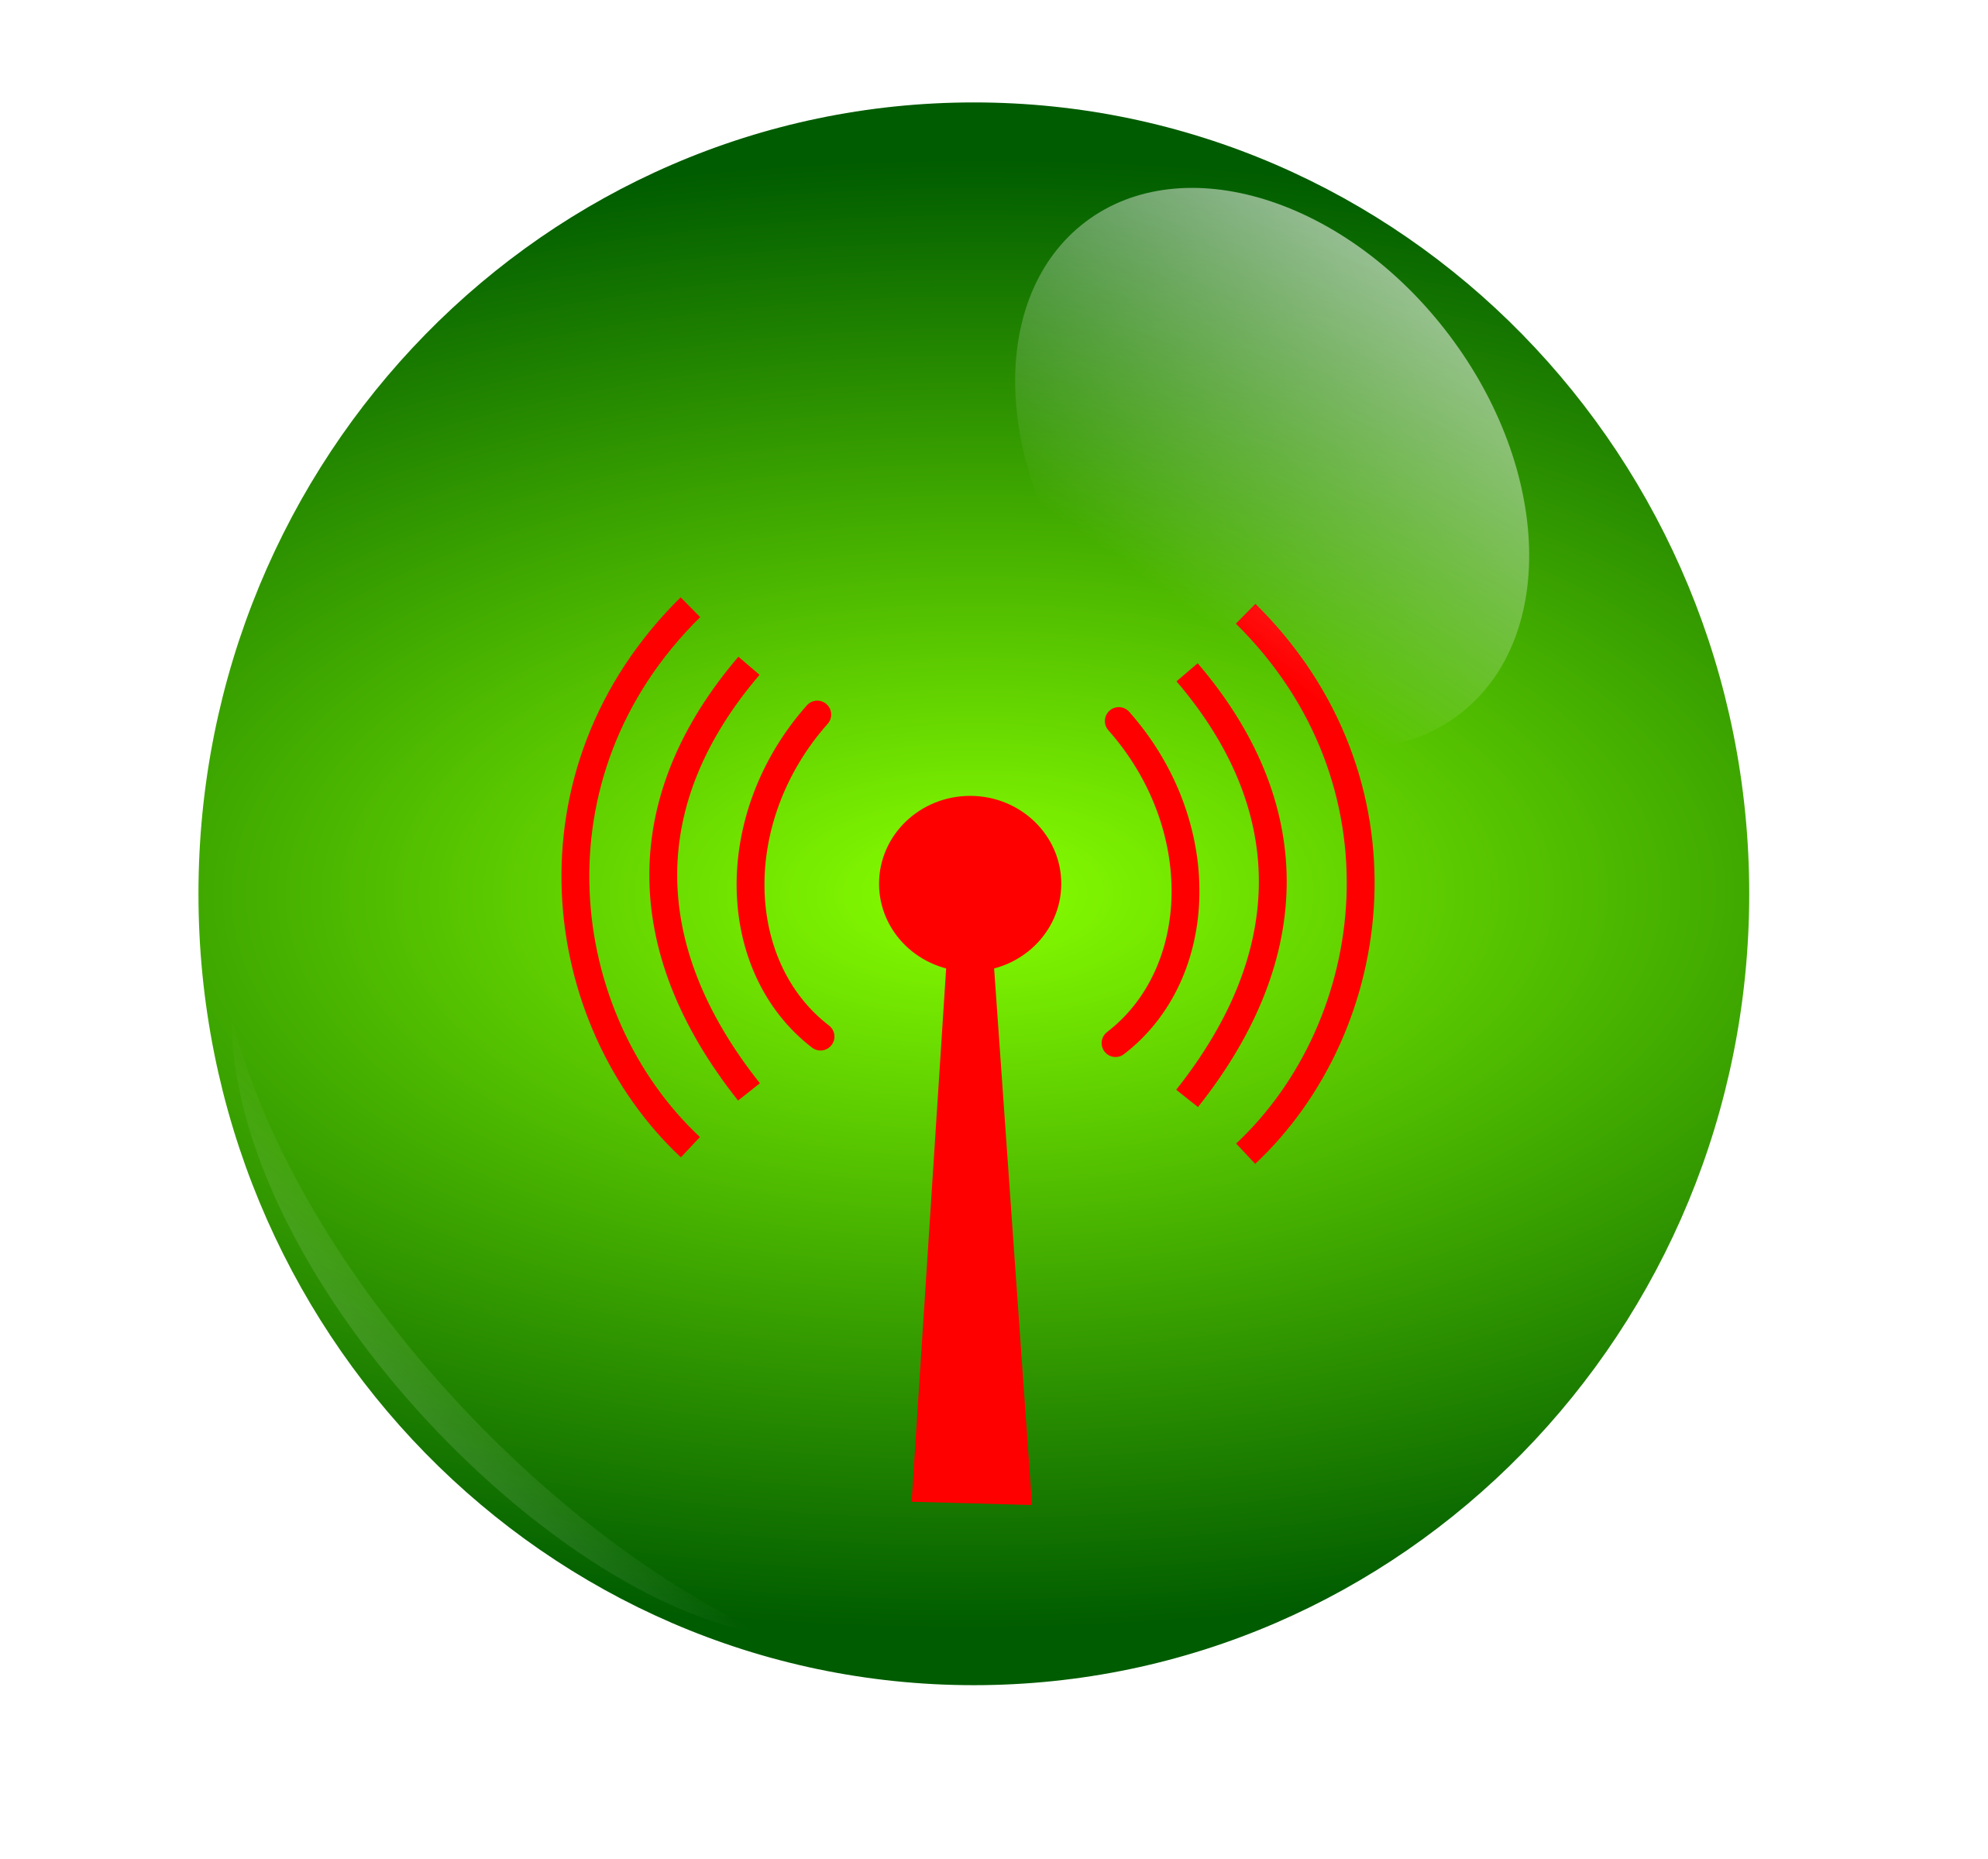 Frisbee clipart green. Wifi big image png